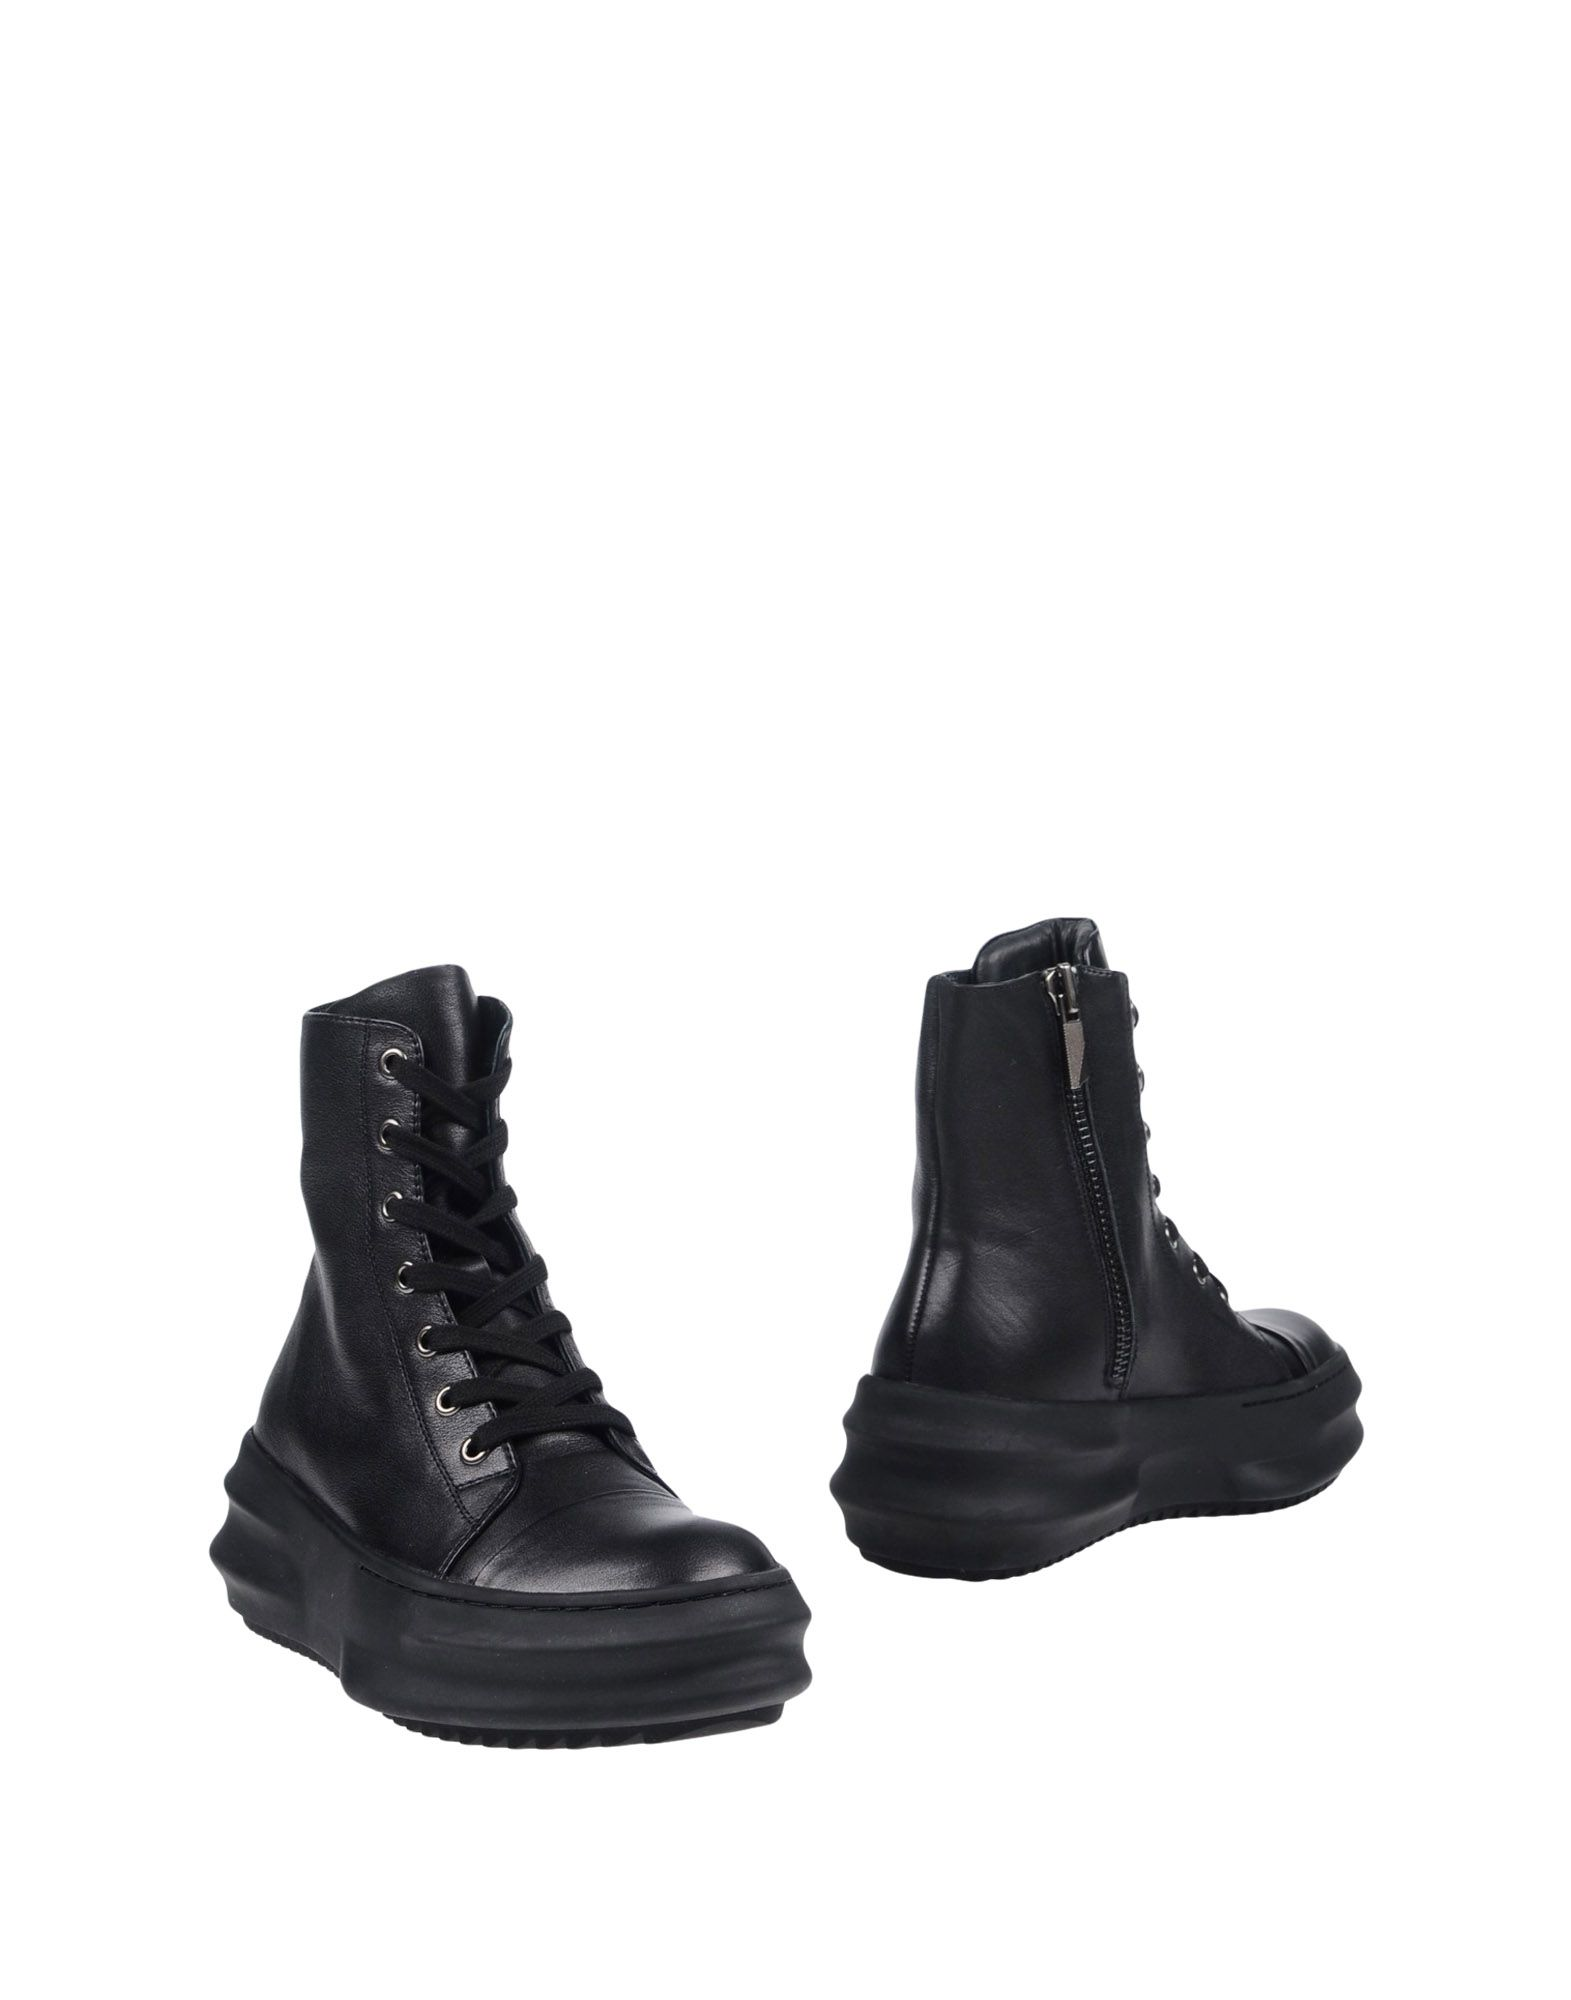 Bottine D.Gnak By Kang.D Homme - Bottines D.Gnak By Kang.D sur